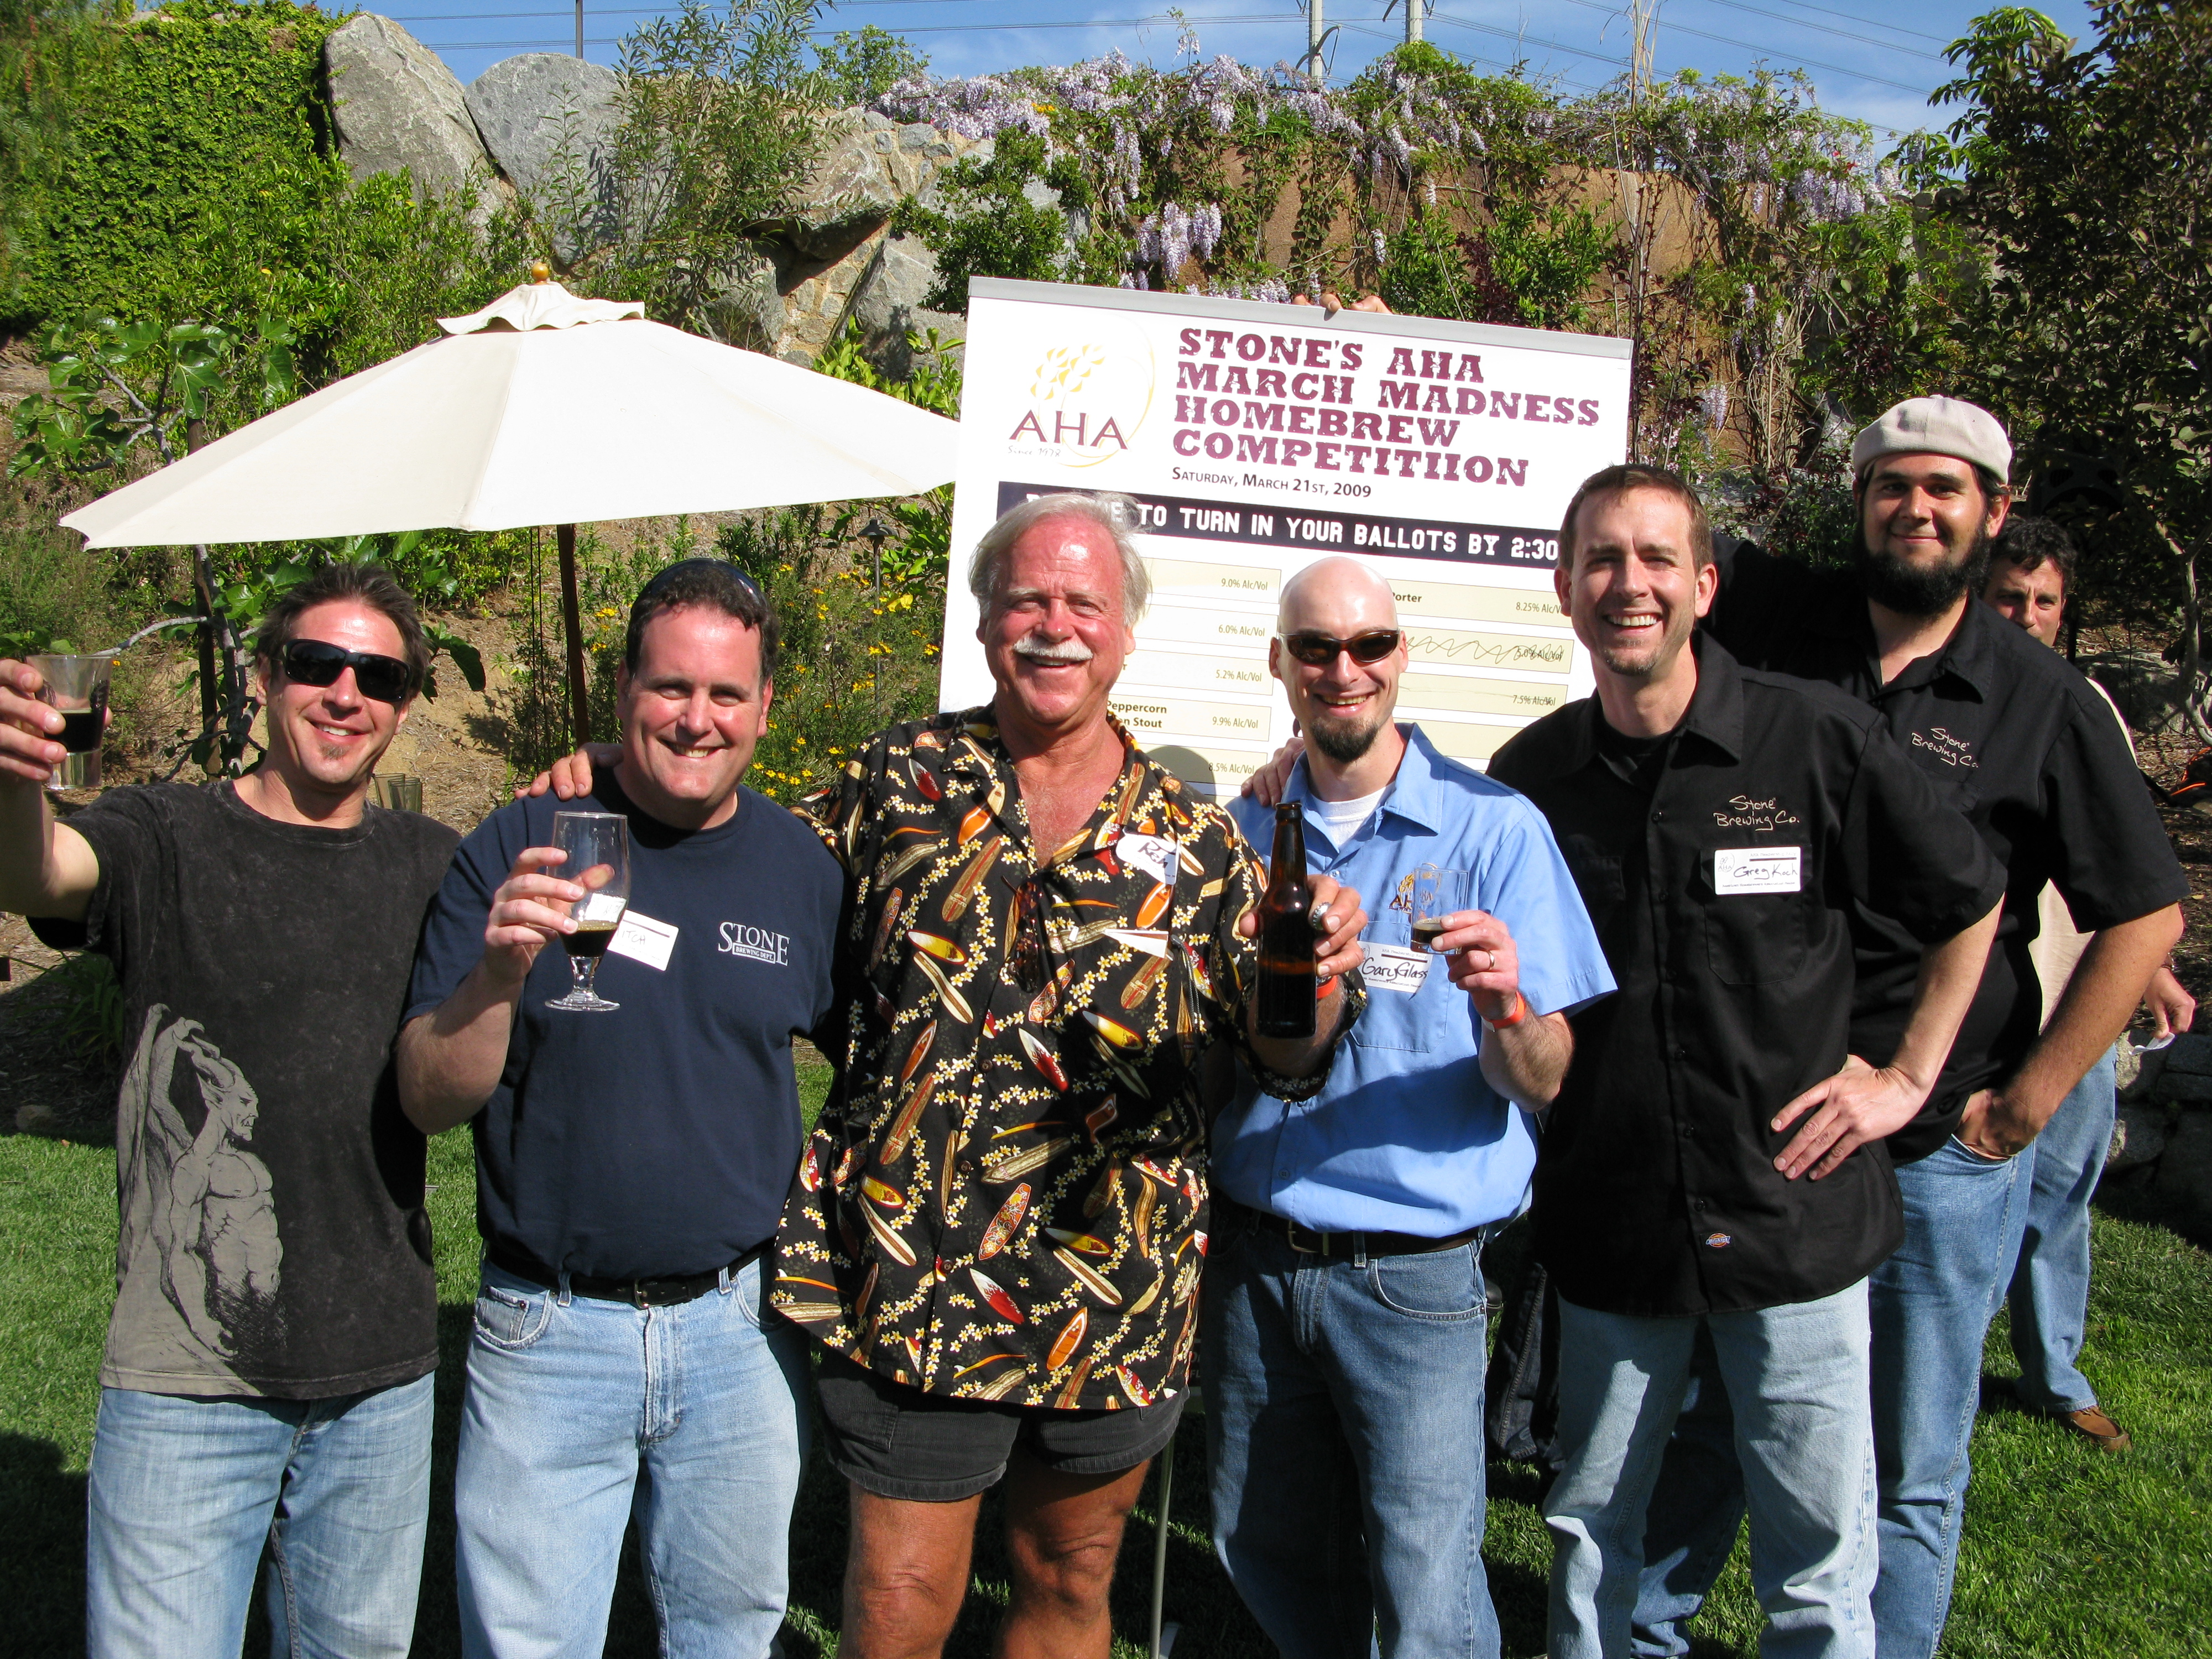 From left to right: Chris Cochran, Mitch Steele, Ken Schmidt, Gary Glass, Greg Koch, Mike Palmer